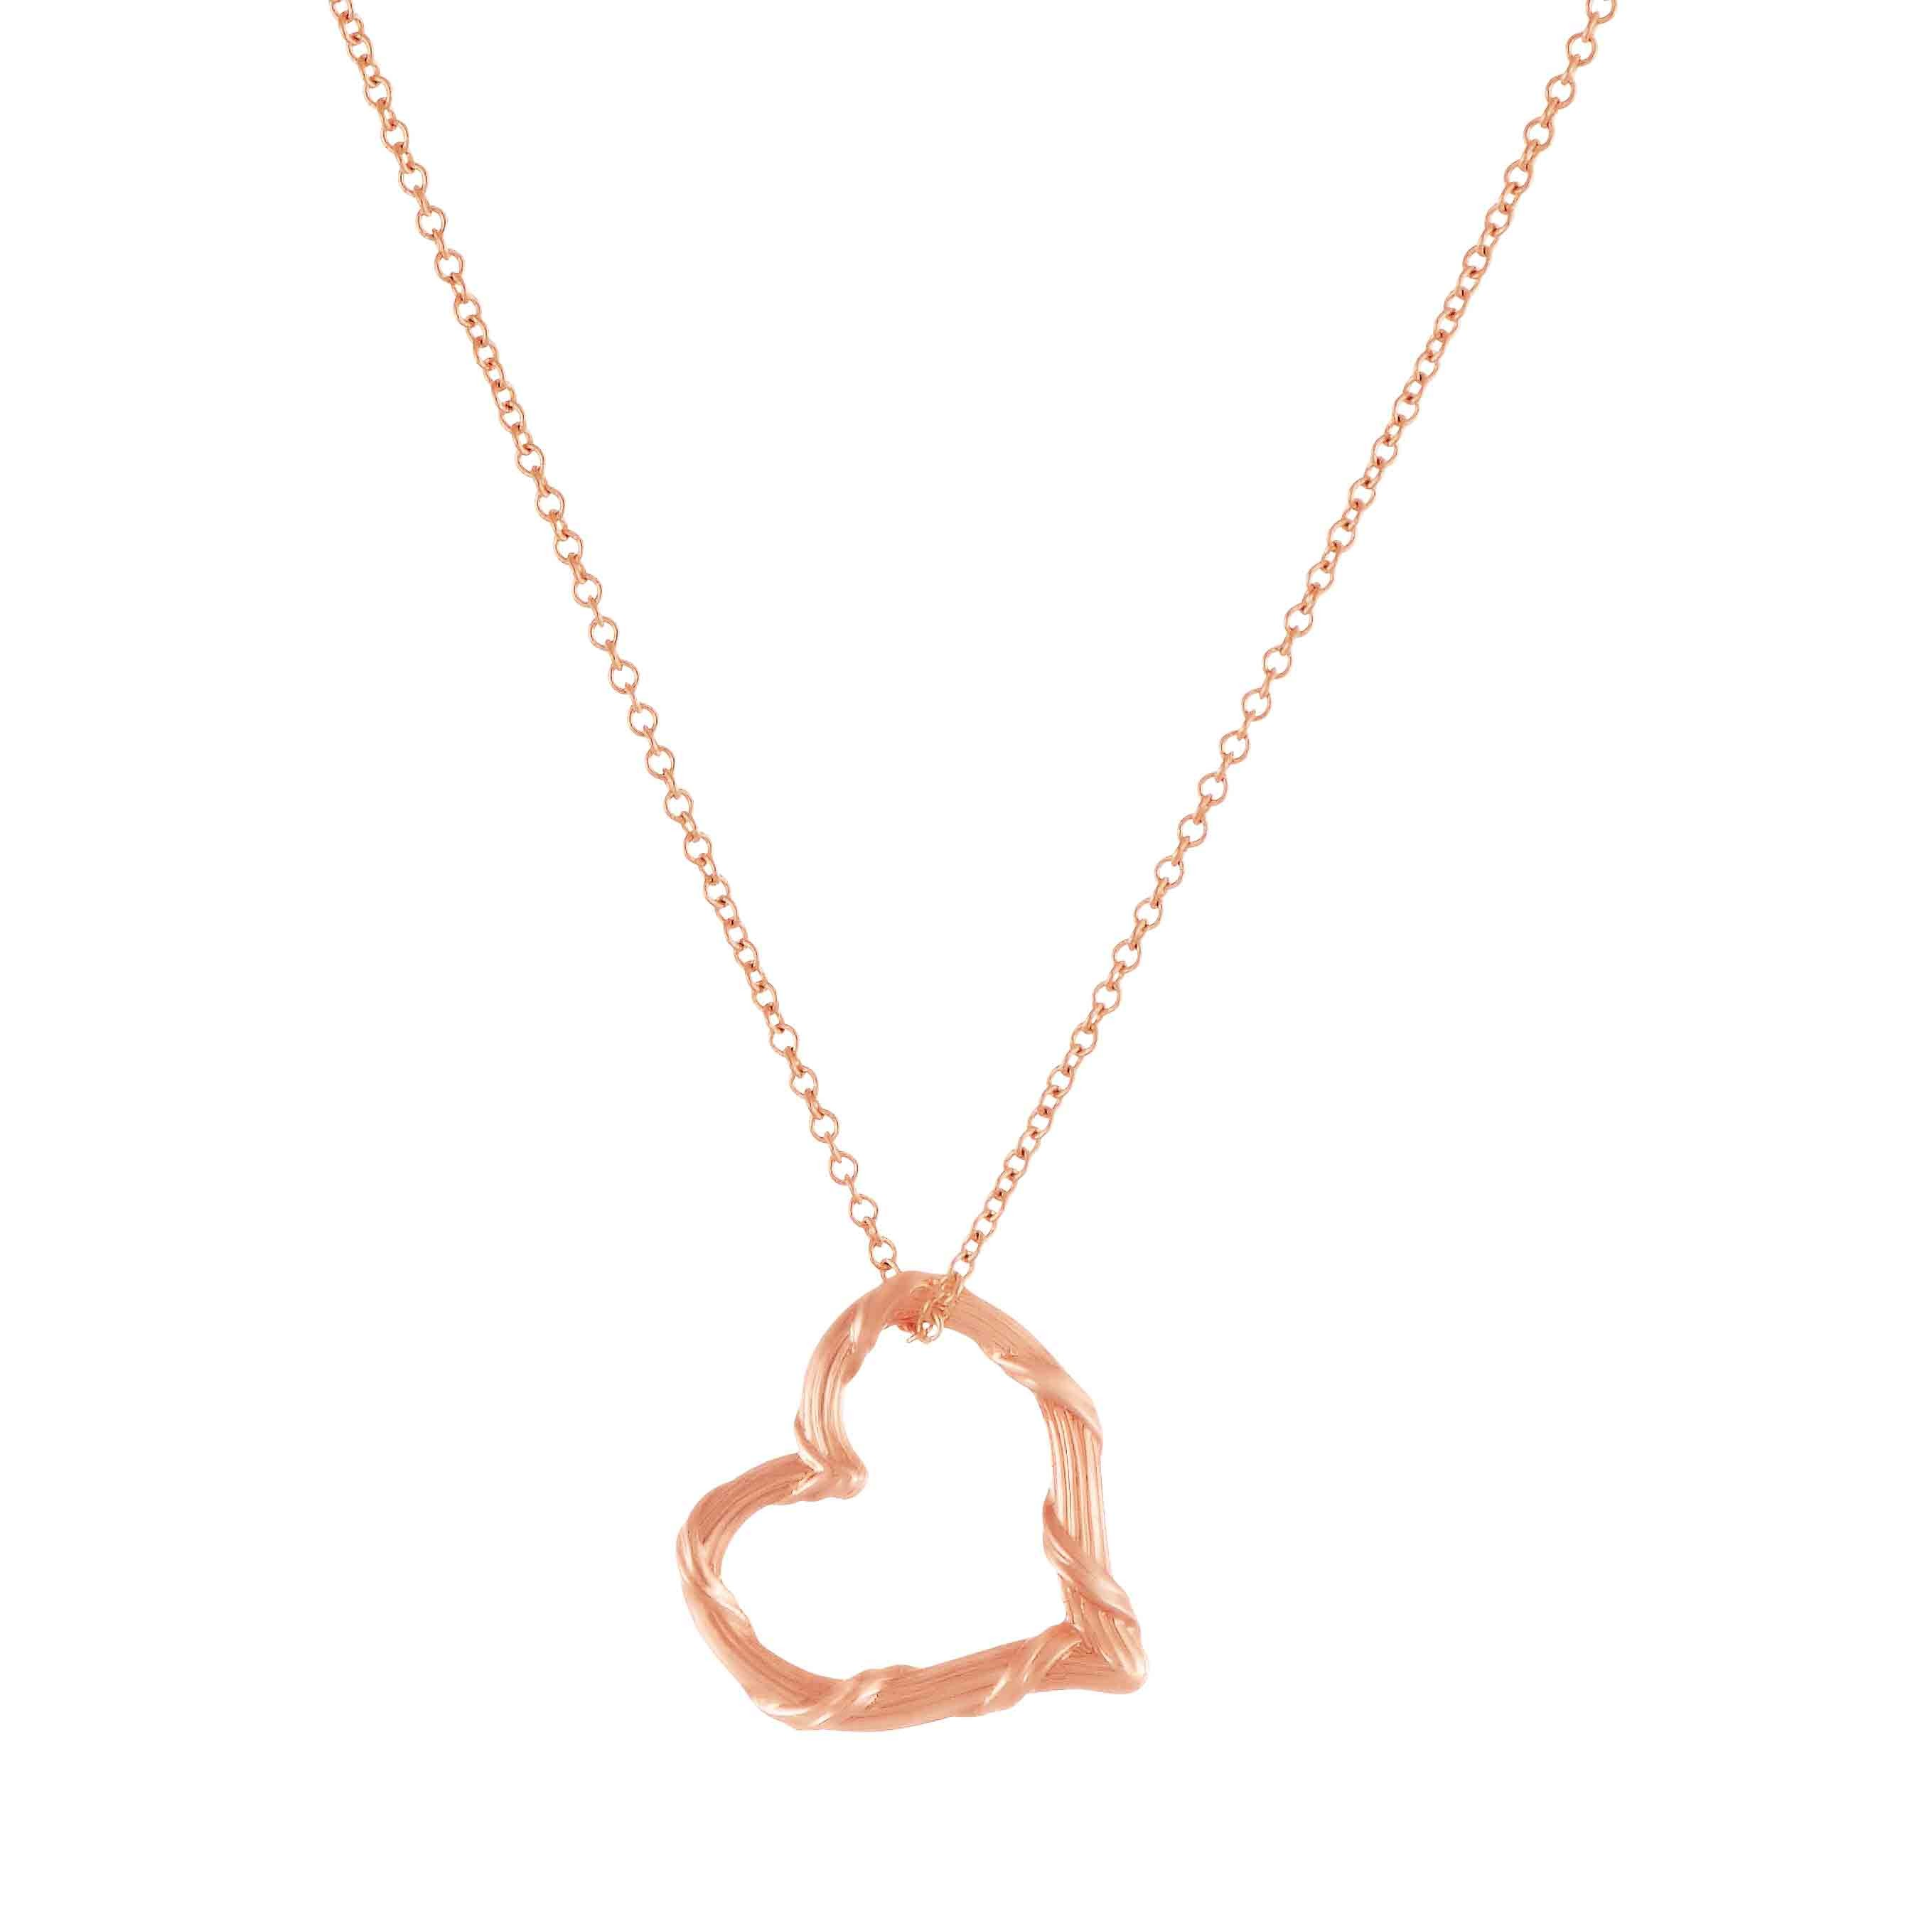 18k gold pendant necklace for men women rose yellow gold heritage mini floating heart necklace in 18k rose gold 16 chain aloadofball Images